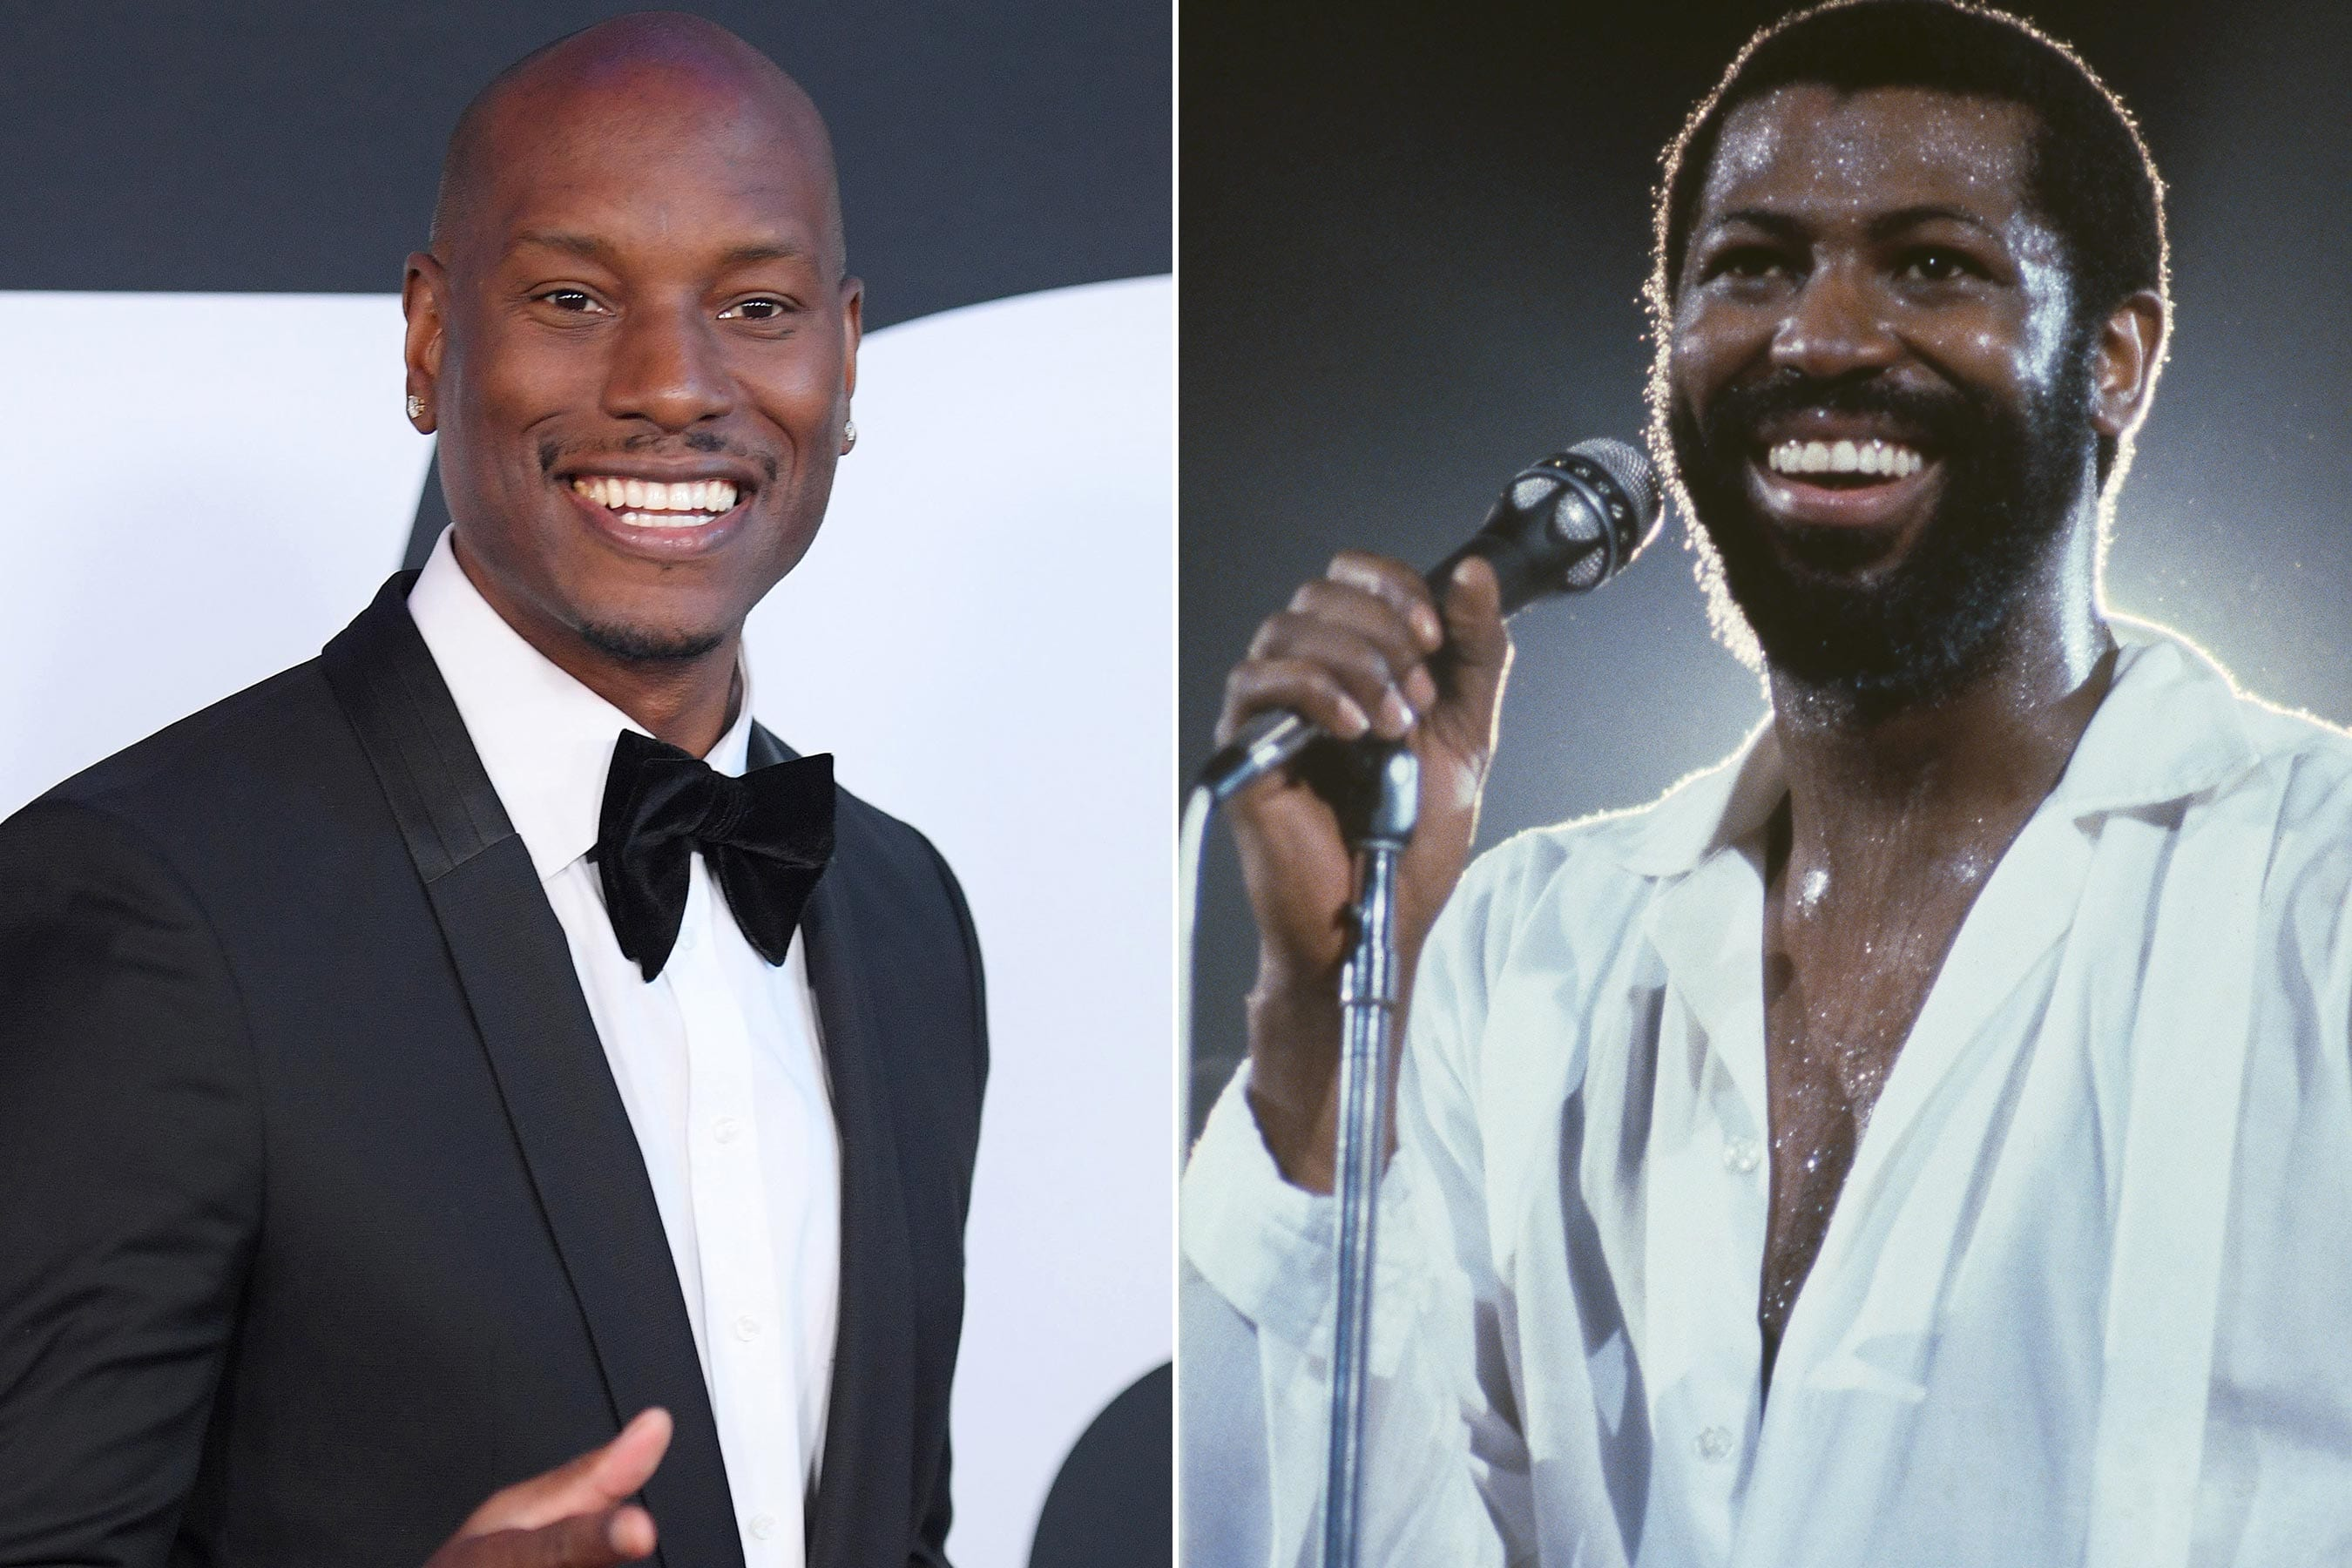 Tyrese Gibson is Set to Star in Teddy Pendergrass Biopic